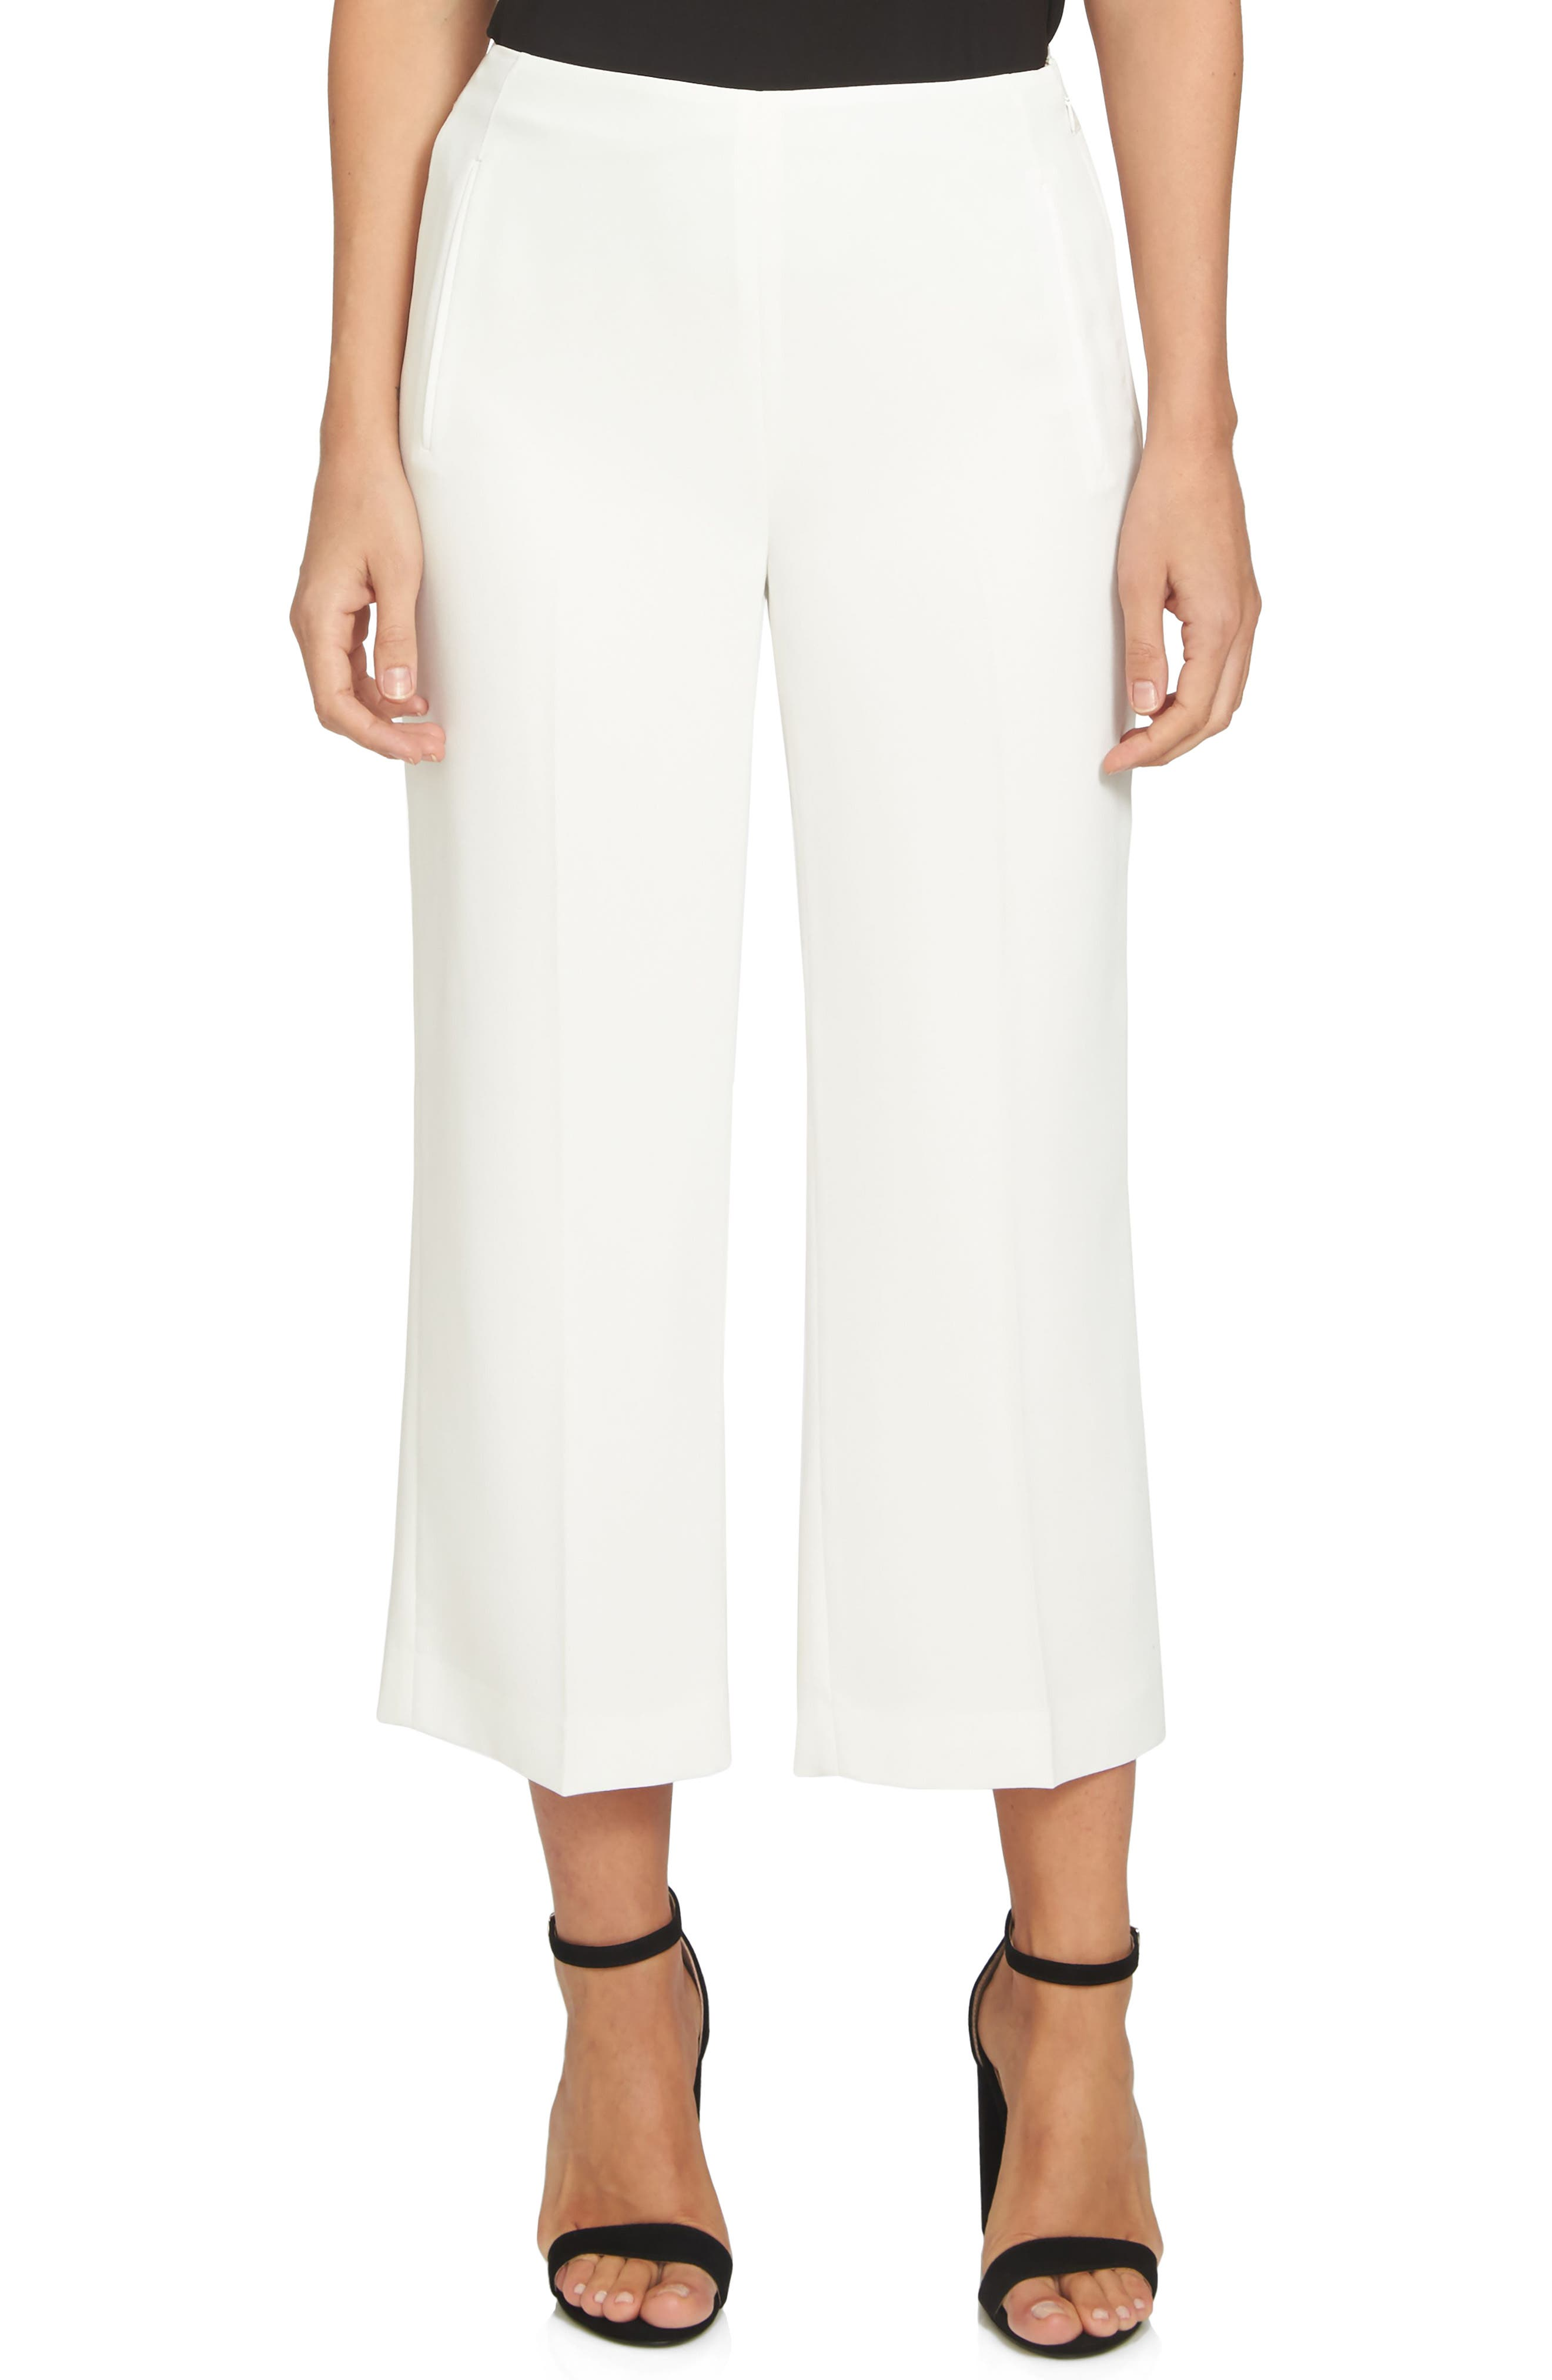 Moss Crepe Crop Trousers,                         Main,                         color, 103